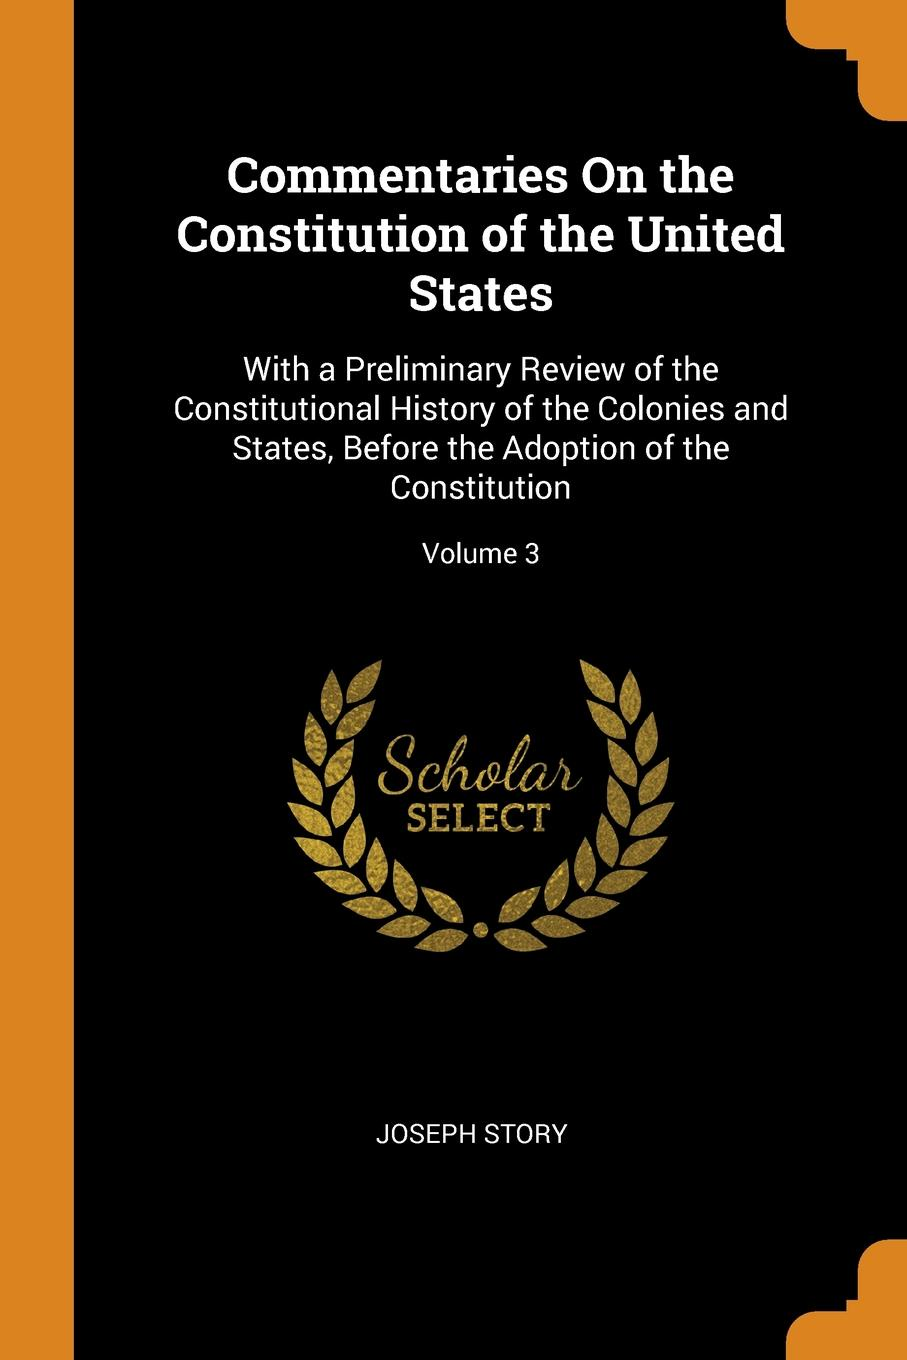 Commentaries On the Constitution of the United States. With a Preliminary Review of the Constitutional History of the Colonies and States, Before the Adoption of the Constitution; Volume 3. Joseph Story